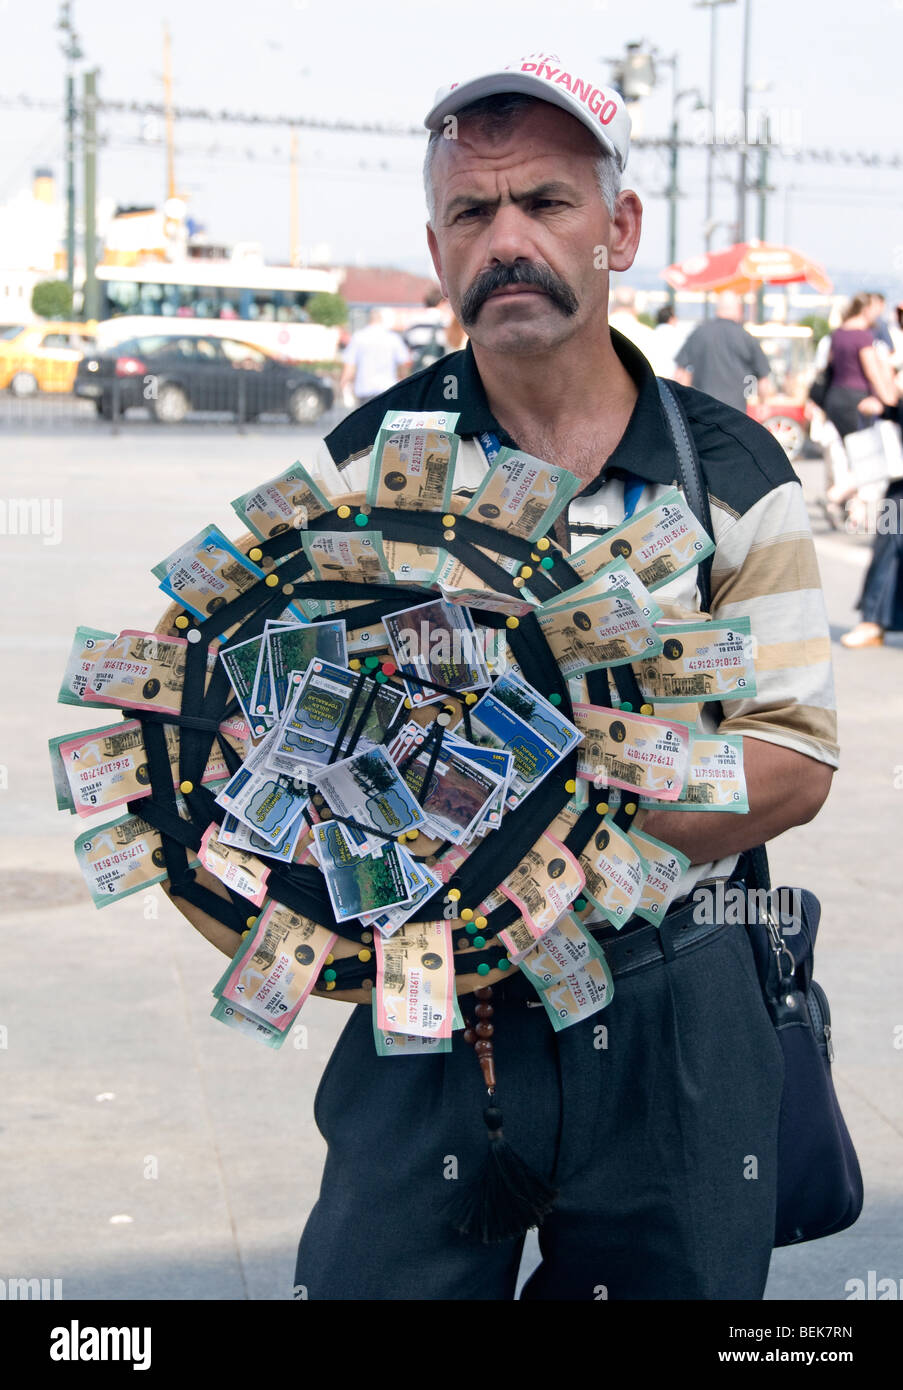 Istanbul Turkey old man gamble money Town Lottery - Stock Image